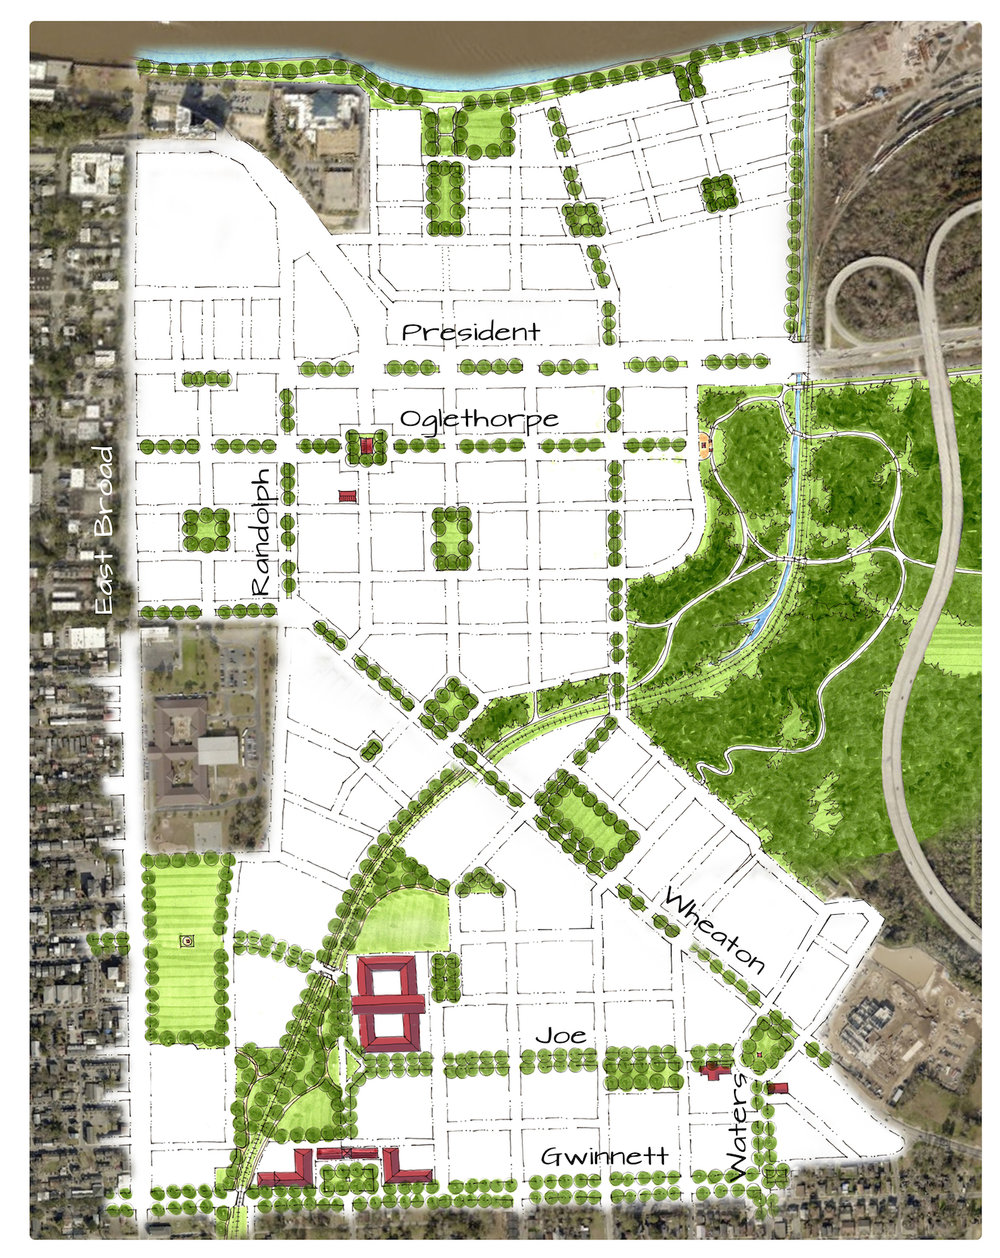 east downtown plan 1=200v2 revised small.jpeg